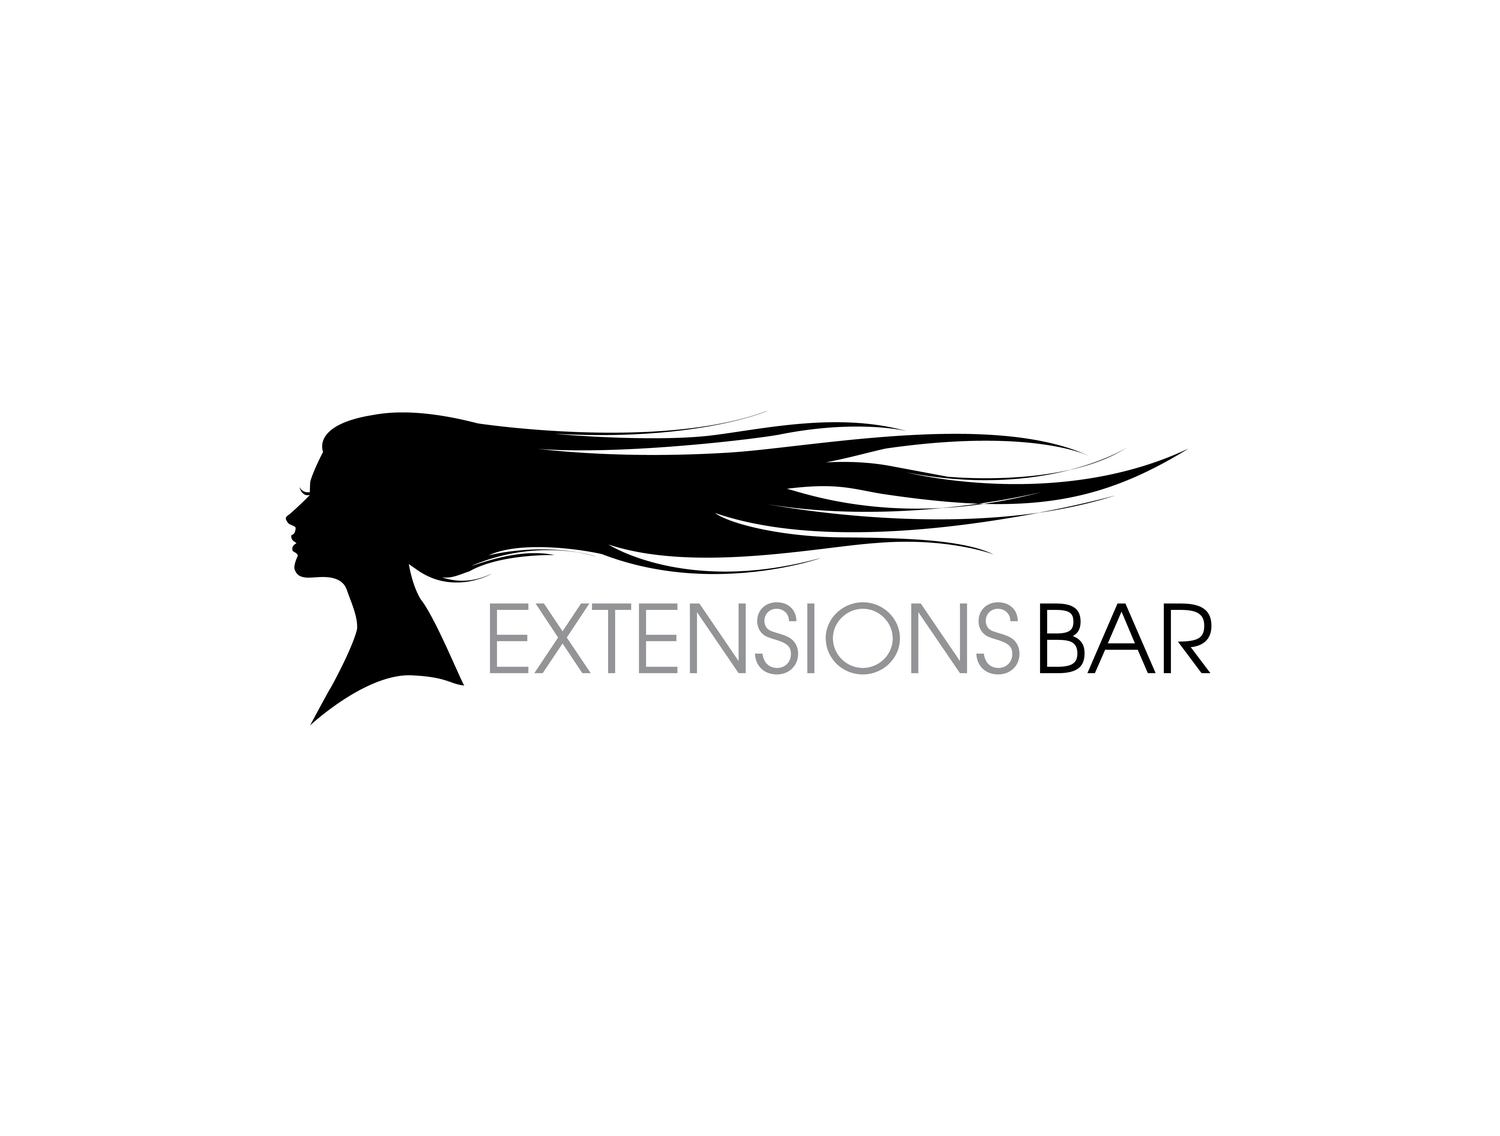 Instantly Beautiful Extensions Bar